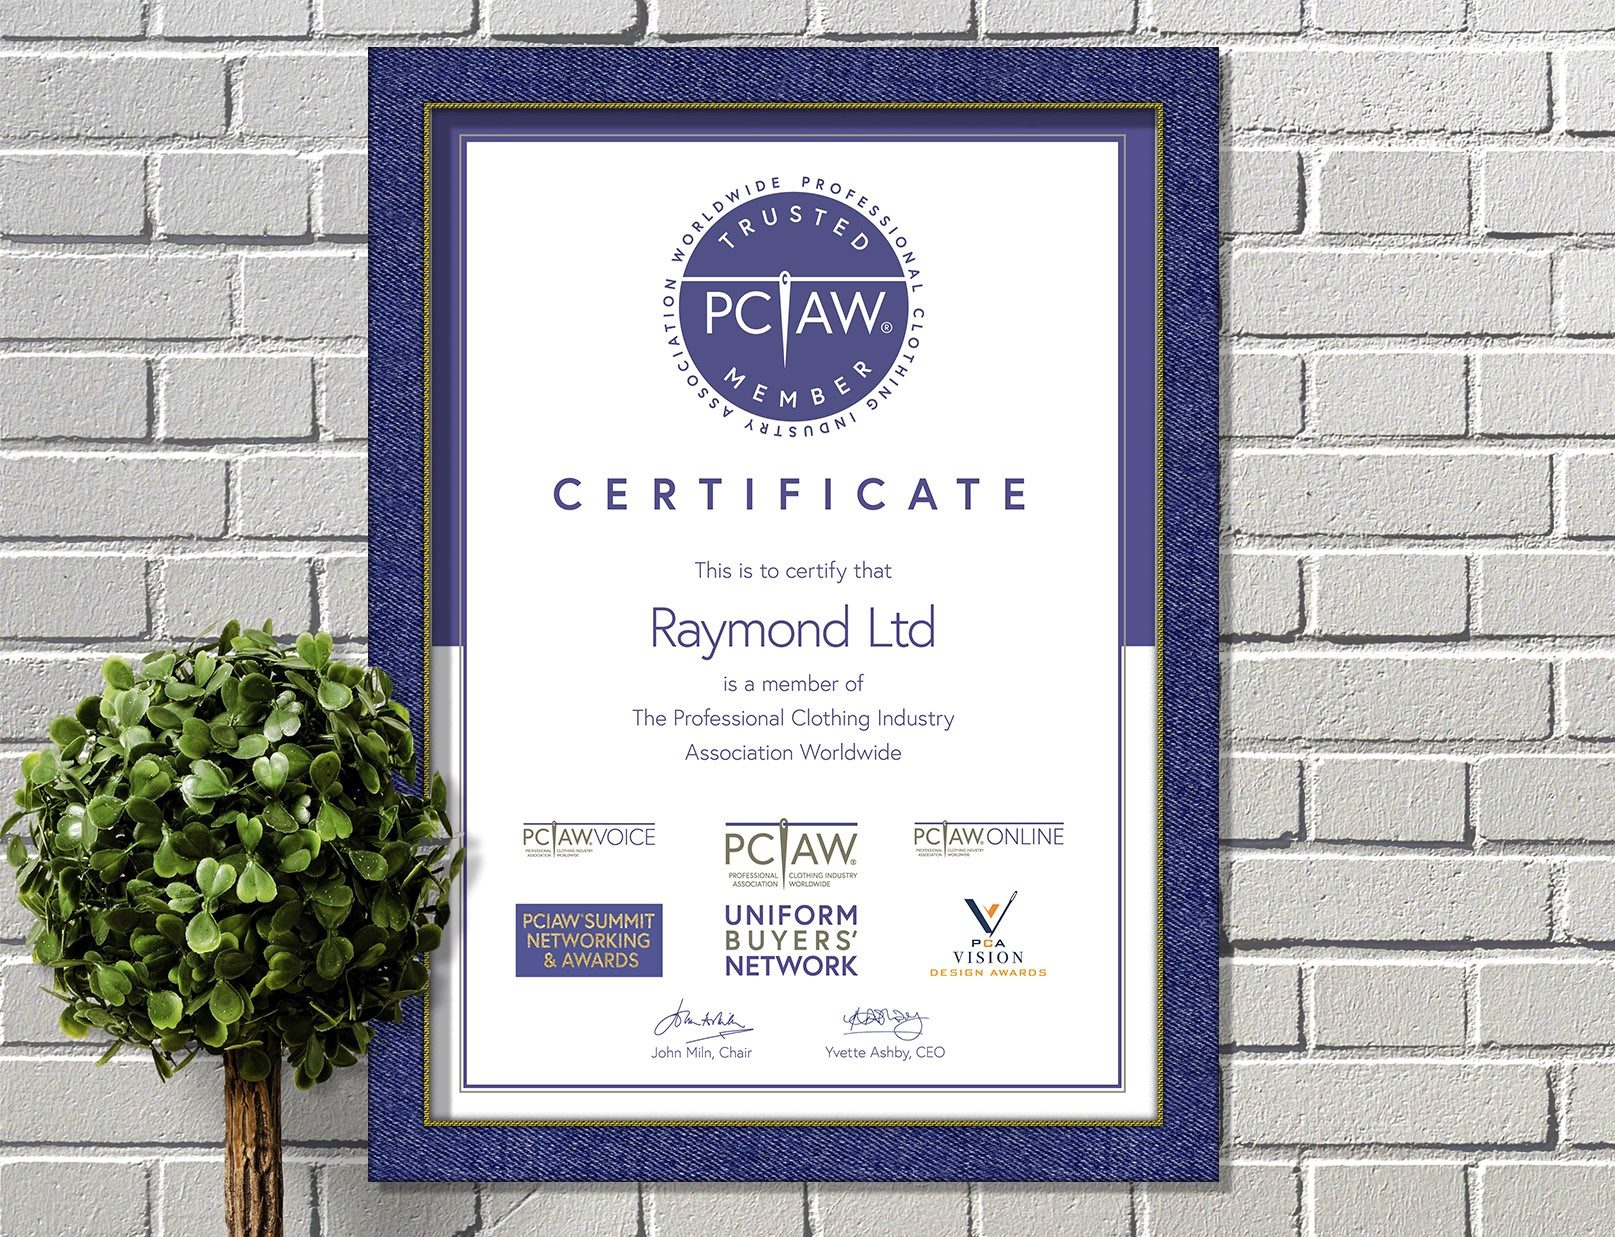 The PCIAW® is pleased to include Raymond Ltd as a PCIAW® Trusted Member and looks forward to extending new opportunities for members by connecting buyers with suppliers for workwear, corporatewear and PPE.